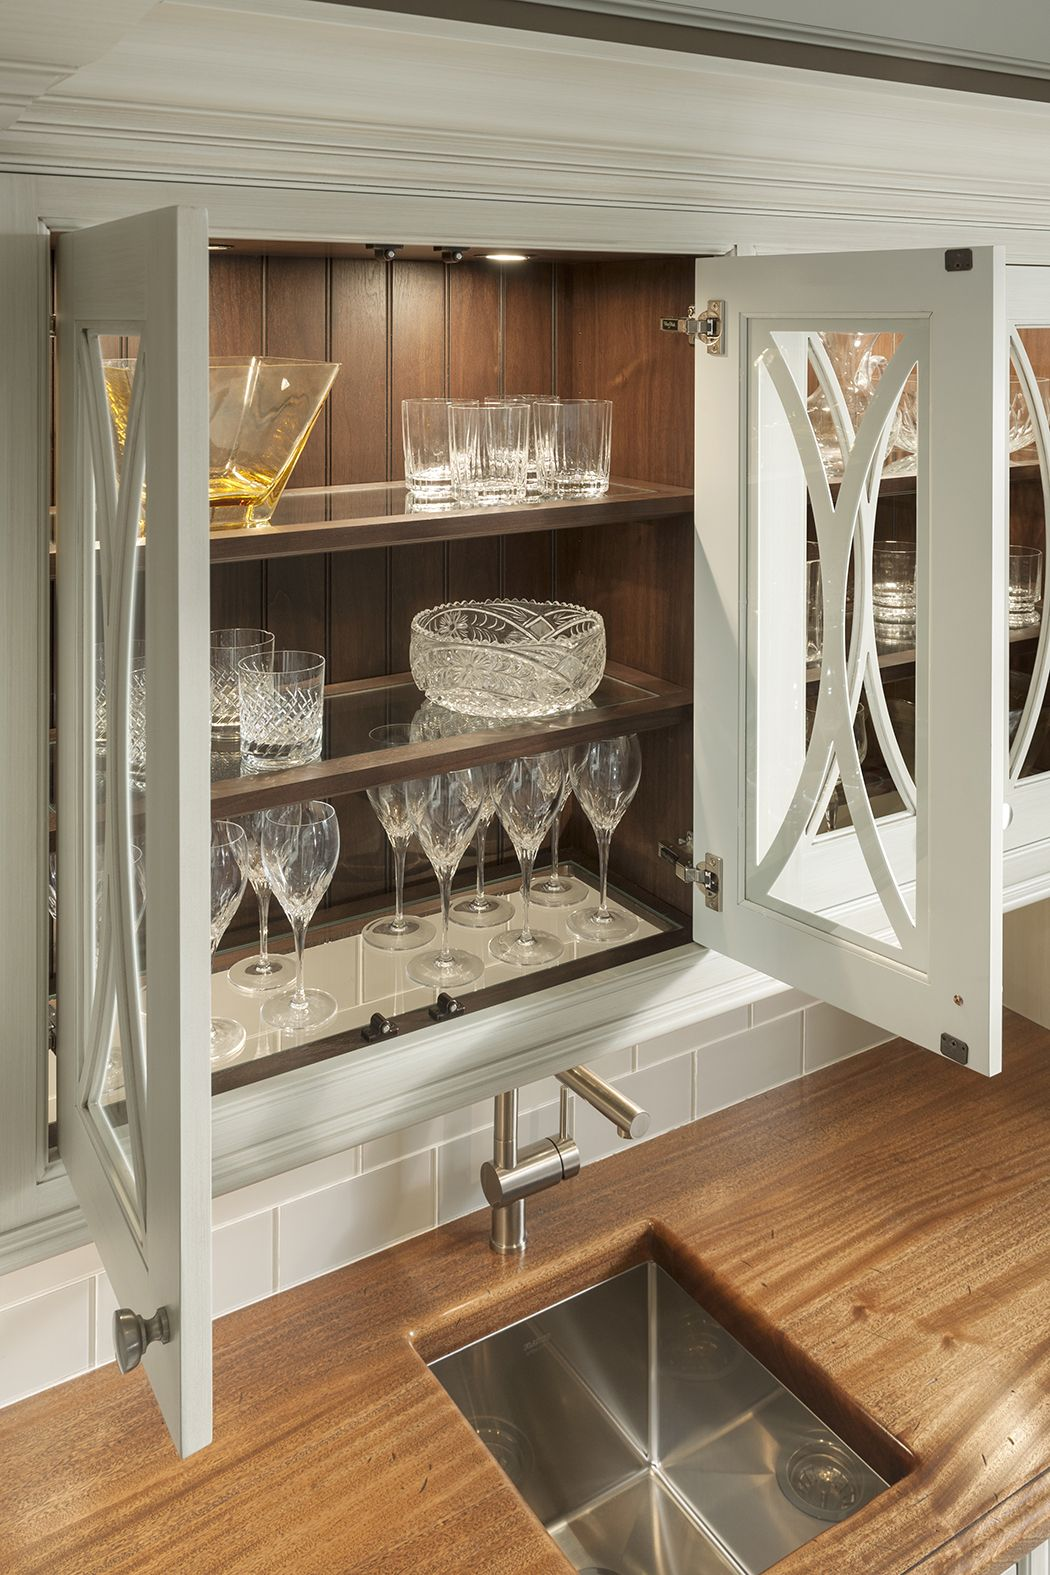 Shelves With Glass Inserts As Shown In Embassy Row By Woodmode Country Kitchen Accessories Farmhouse Kitchen Decor Kitchen Design Trends